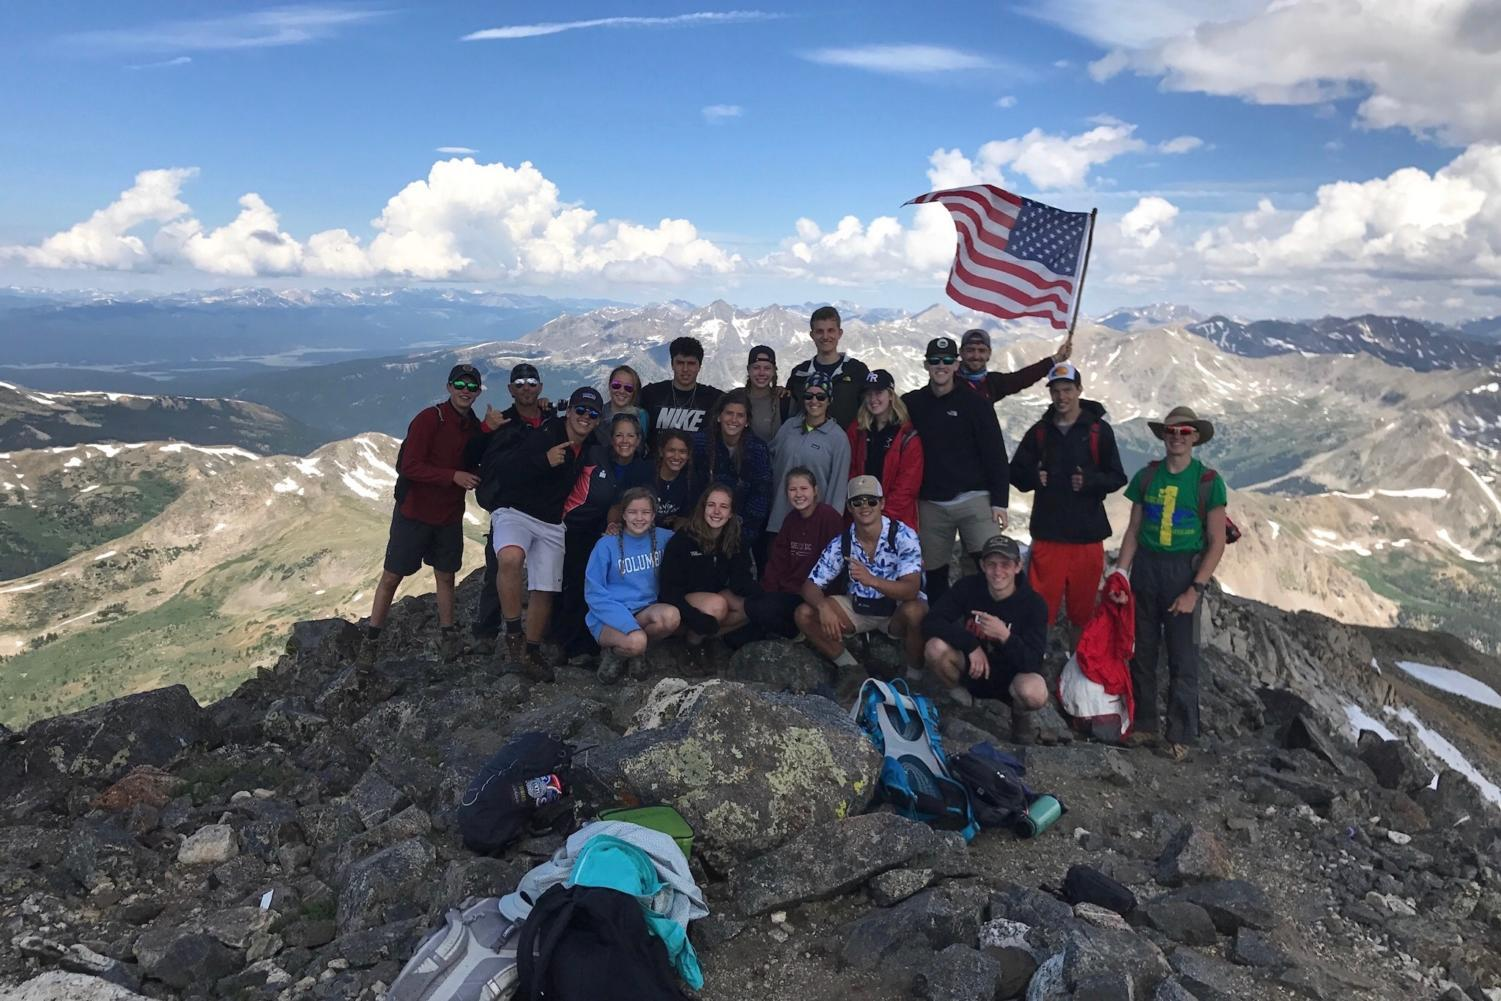 Campers enjoy participating at Camp Pike in Colorado last summer. Camp Pike offers multiple opportunities for student campers, including hiking, backpacking, zip lining and rafting.